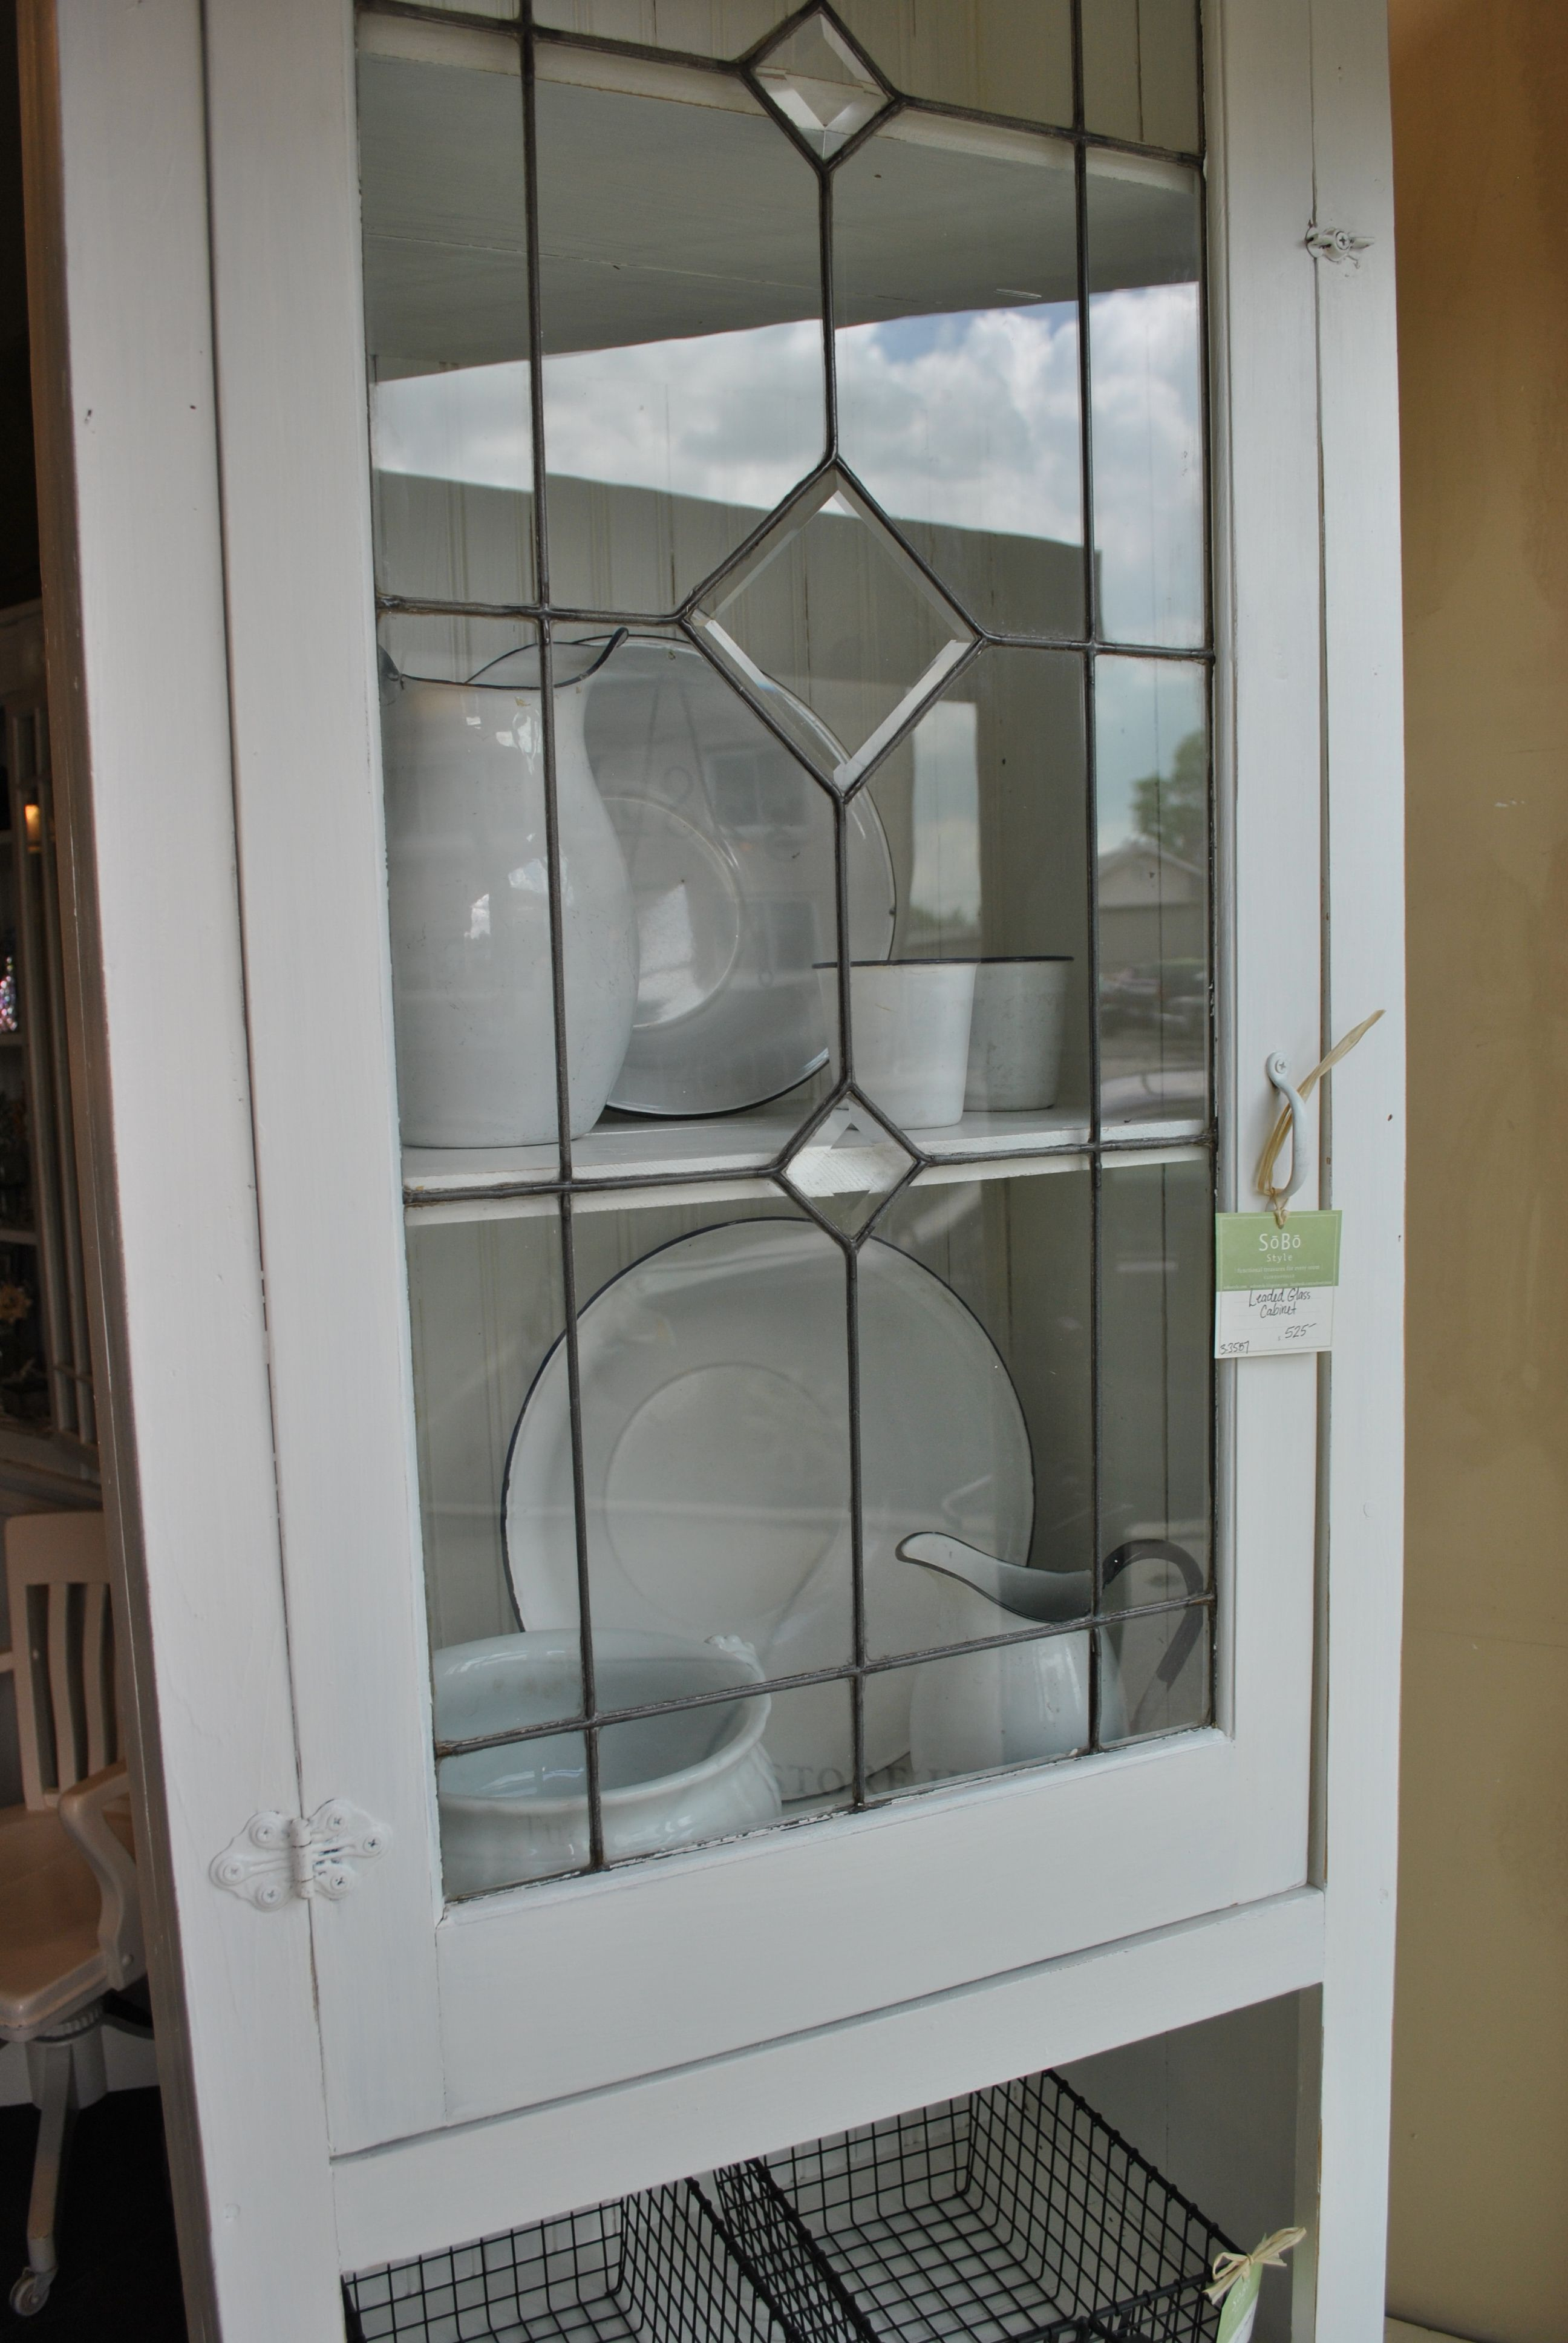 Best Kitchen Gallery: White Leaded Glass Cabi Sobo Style Window Pane Cabi S of Leaded Glass For Kitchen Cabinets on rachelxblog.com